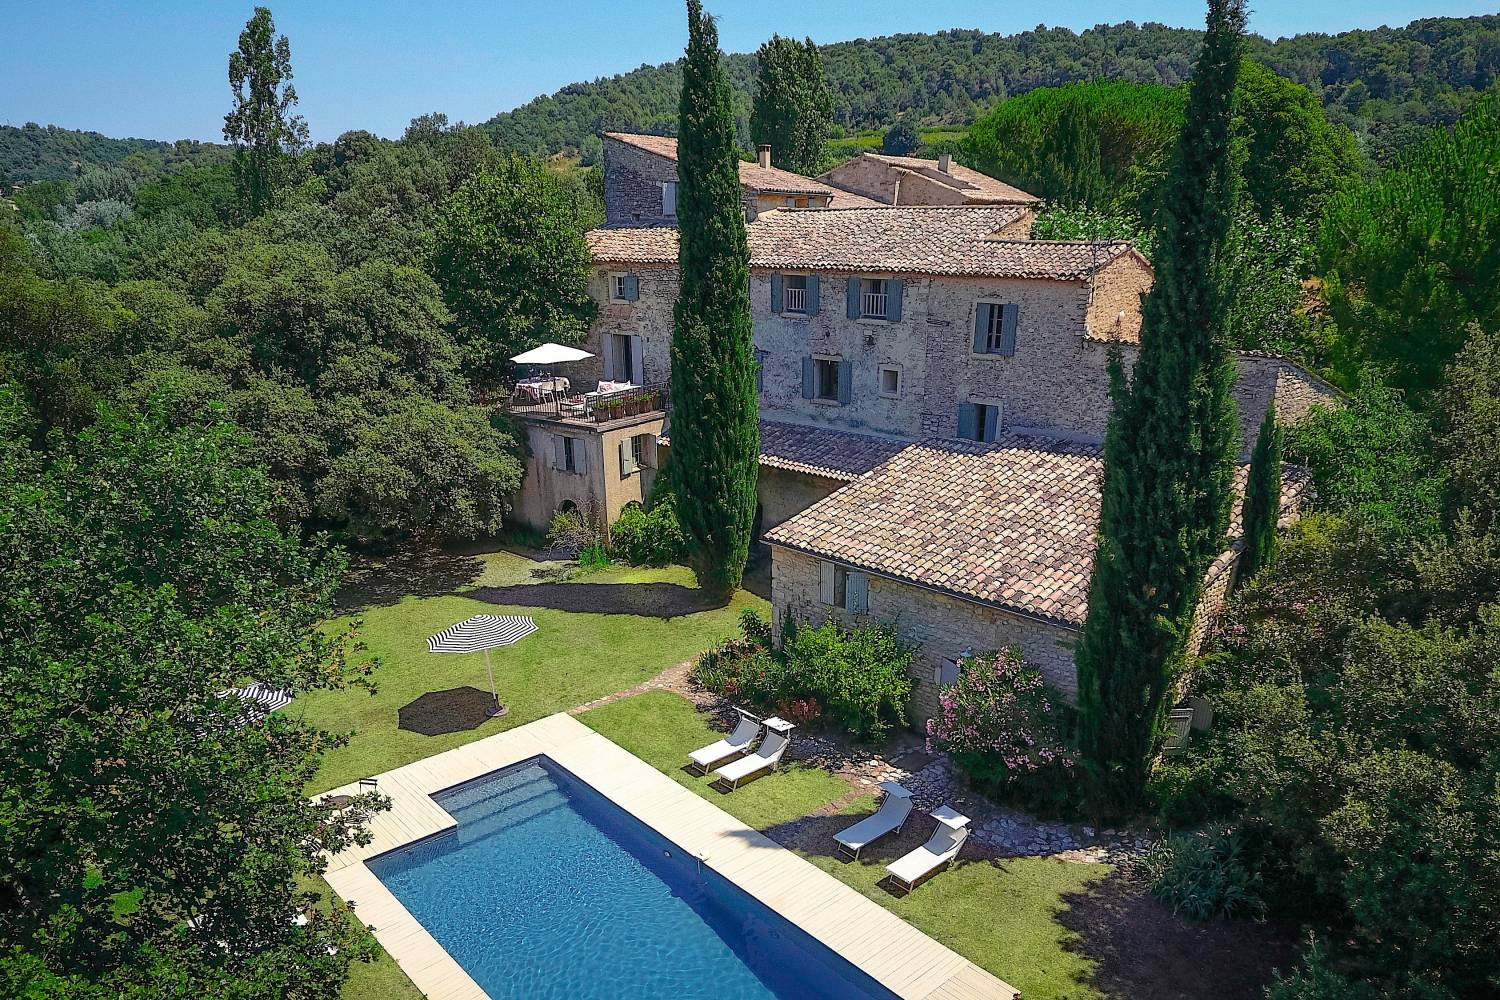 Enjoy a private chef after an amazing day in Luberon - Take a Chef